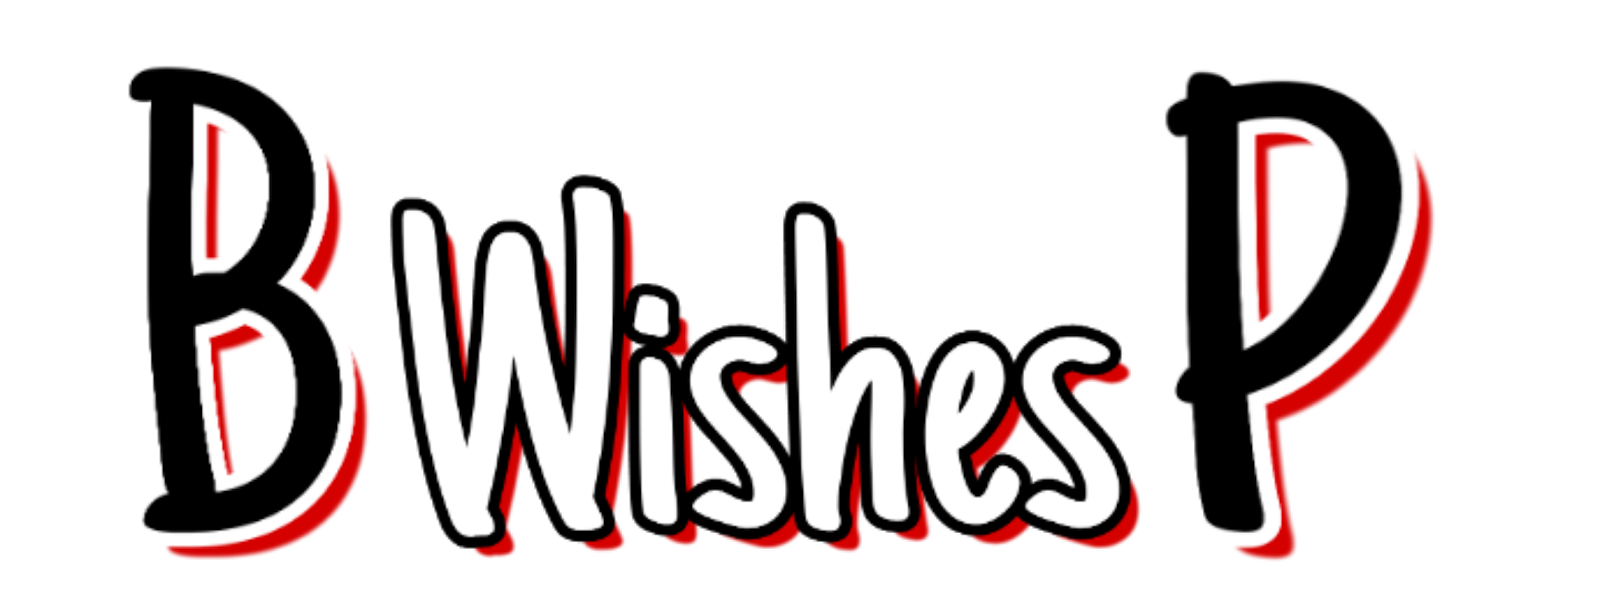 Best wishes pictures - largest collection of wishing images